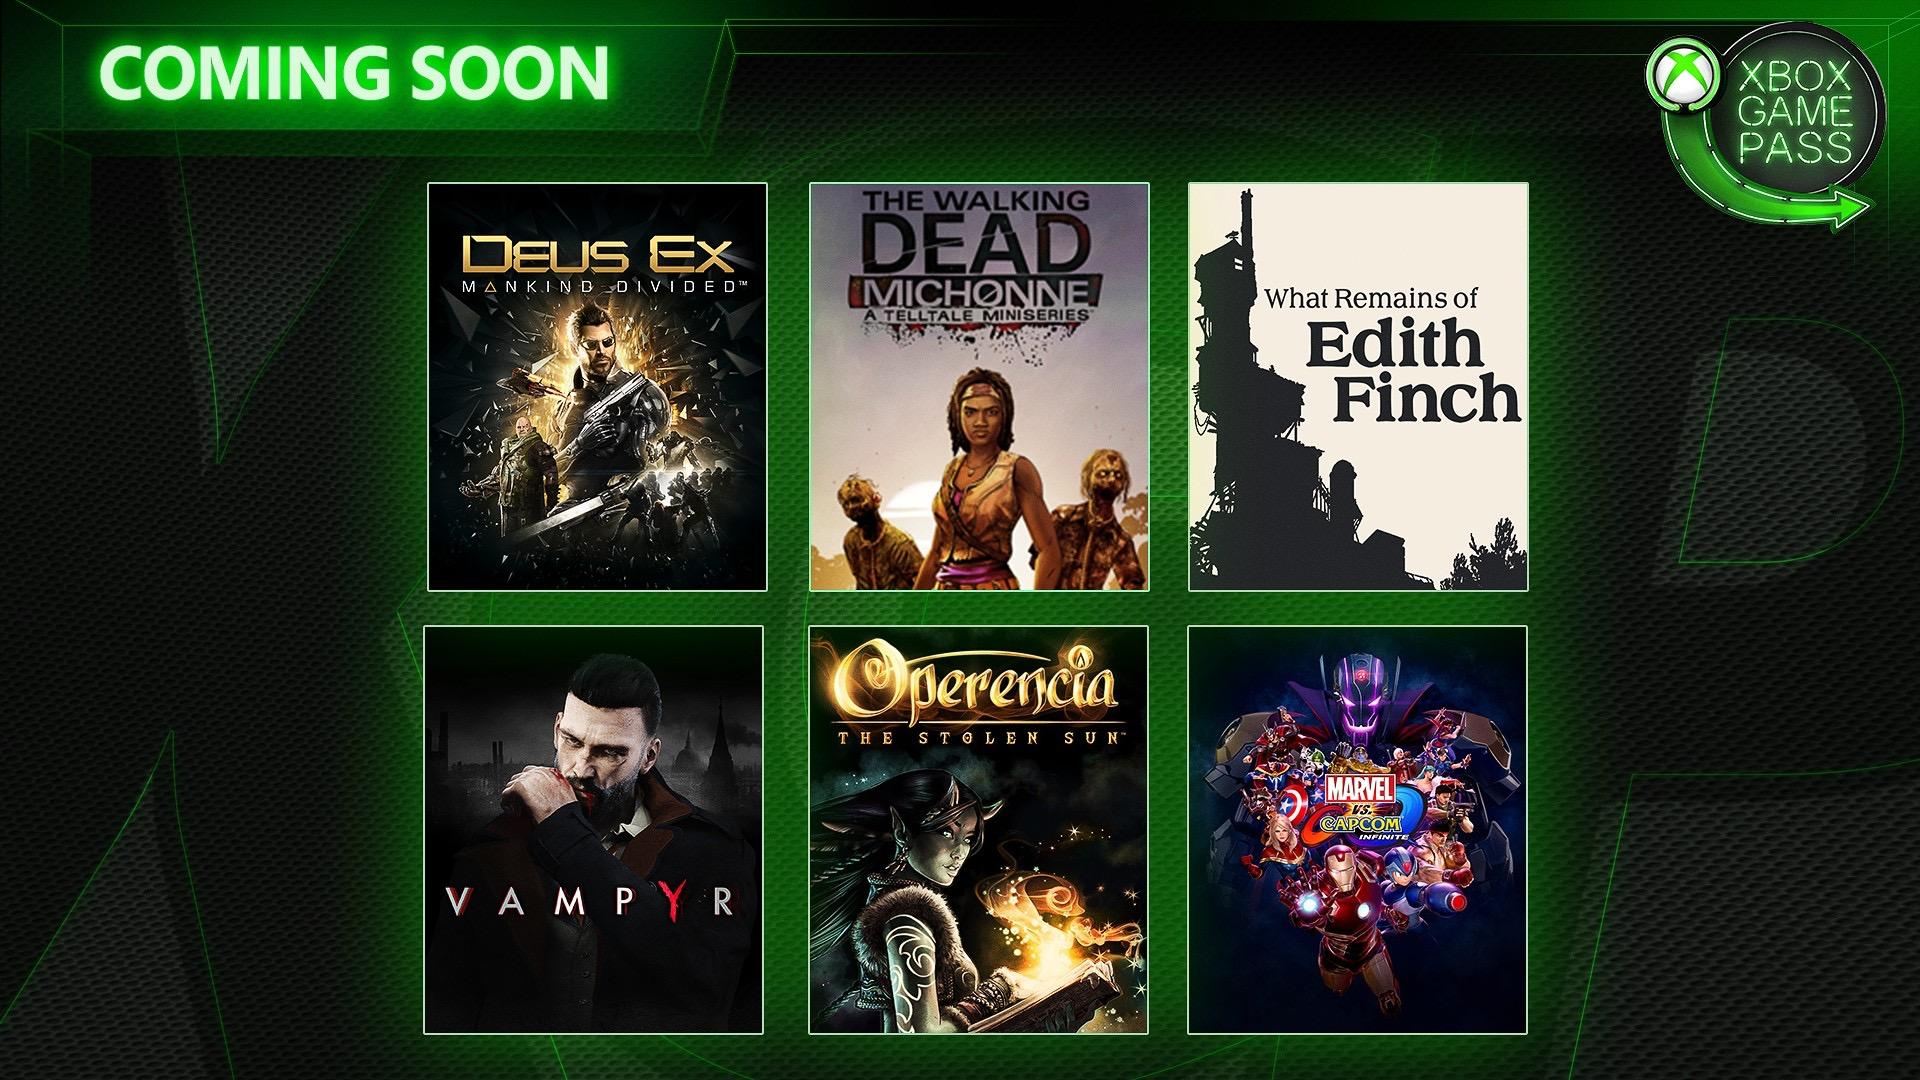 Xbox Game Pass Latest March Additions Include Vampyr, Edith